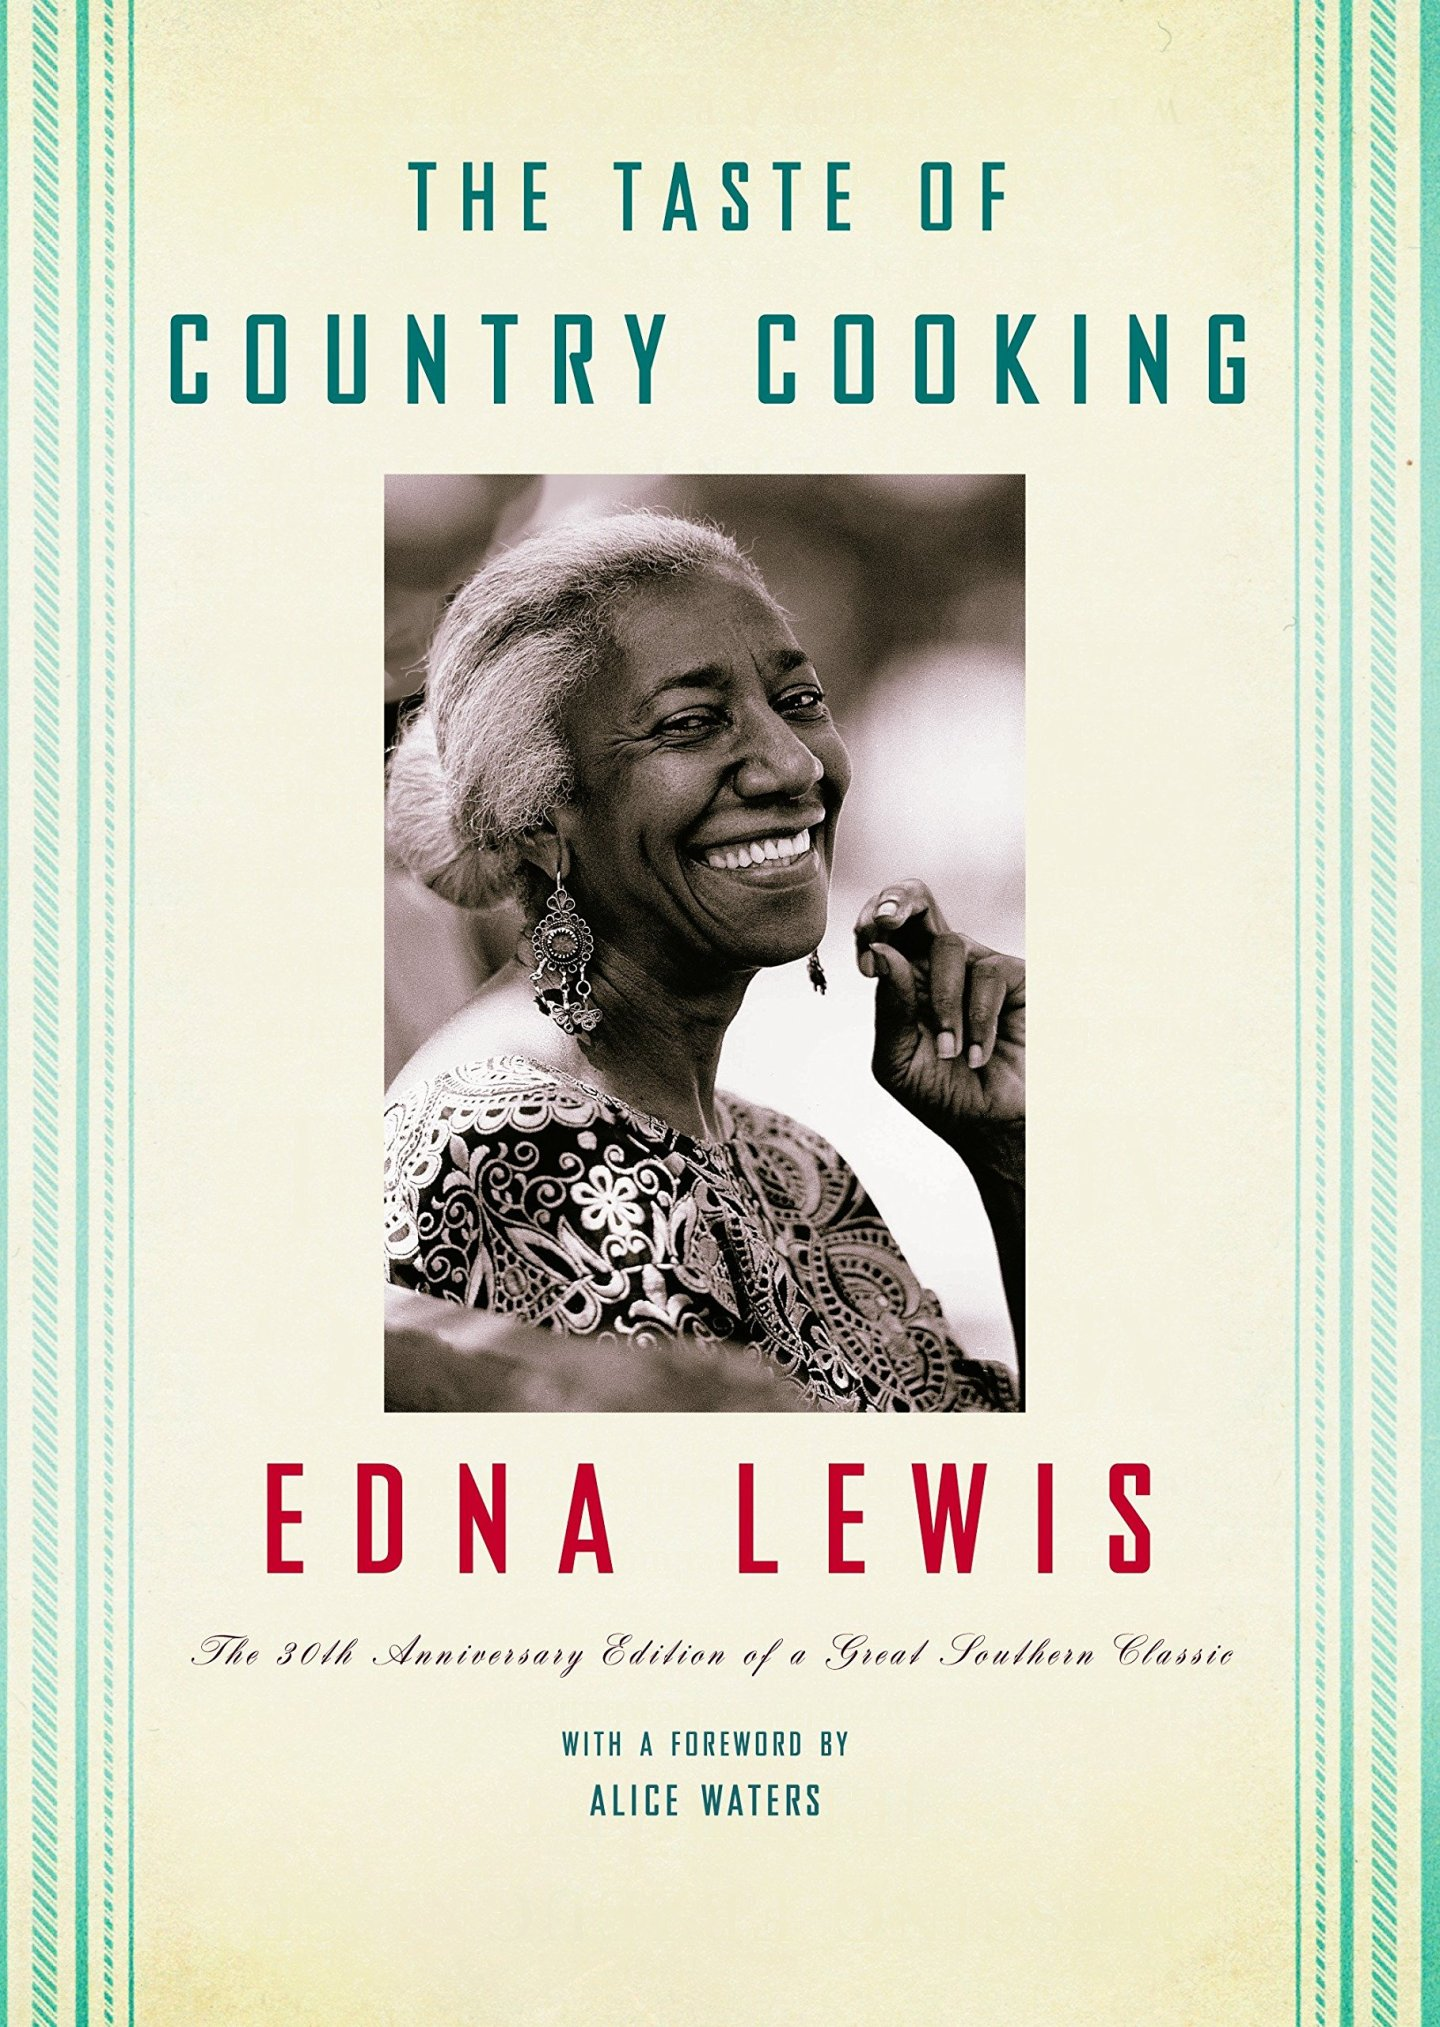 91fQqlkcwL-1440x2027 Soul Food Cookbooks We Love by 3 Black Southern Belle Legends of Food